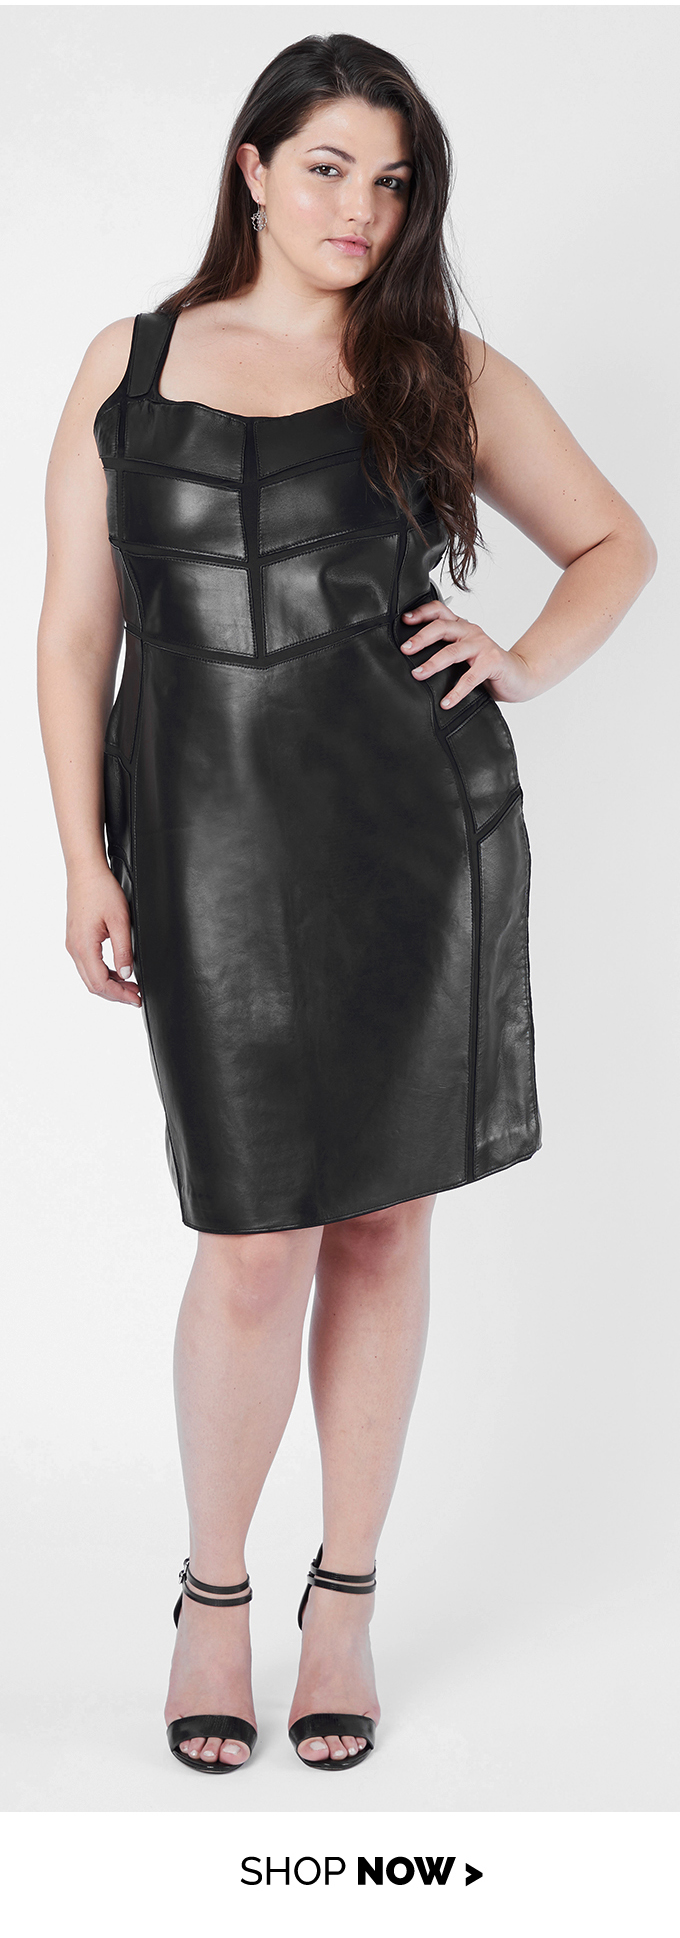 leather applique dress black